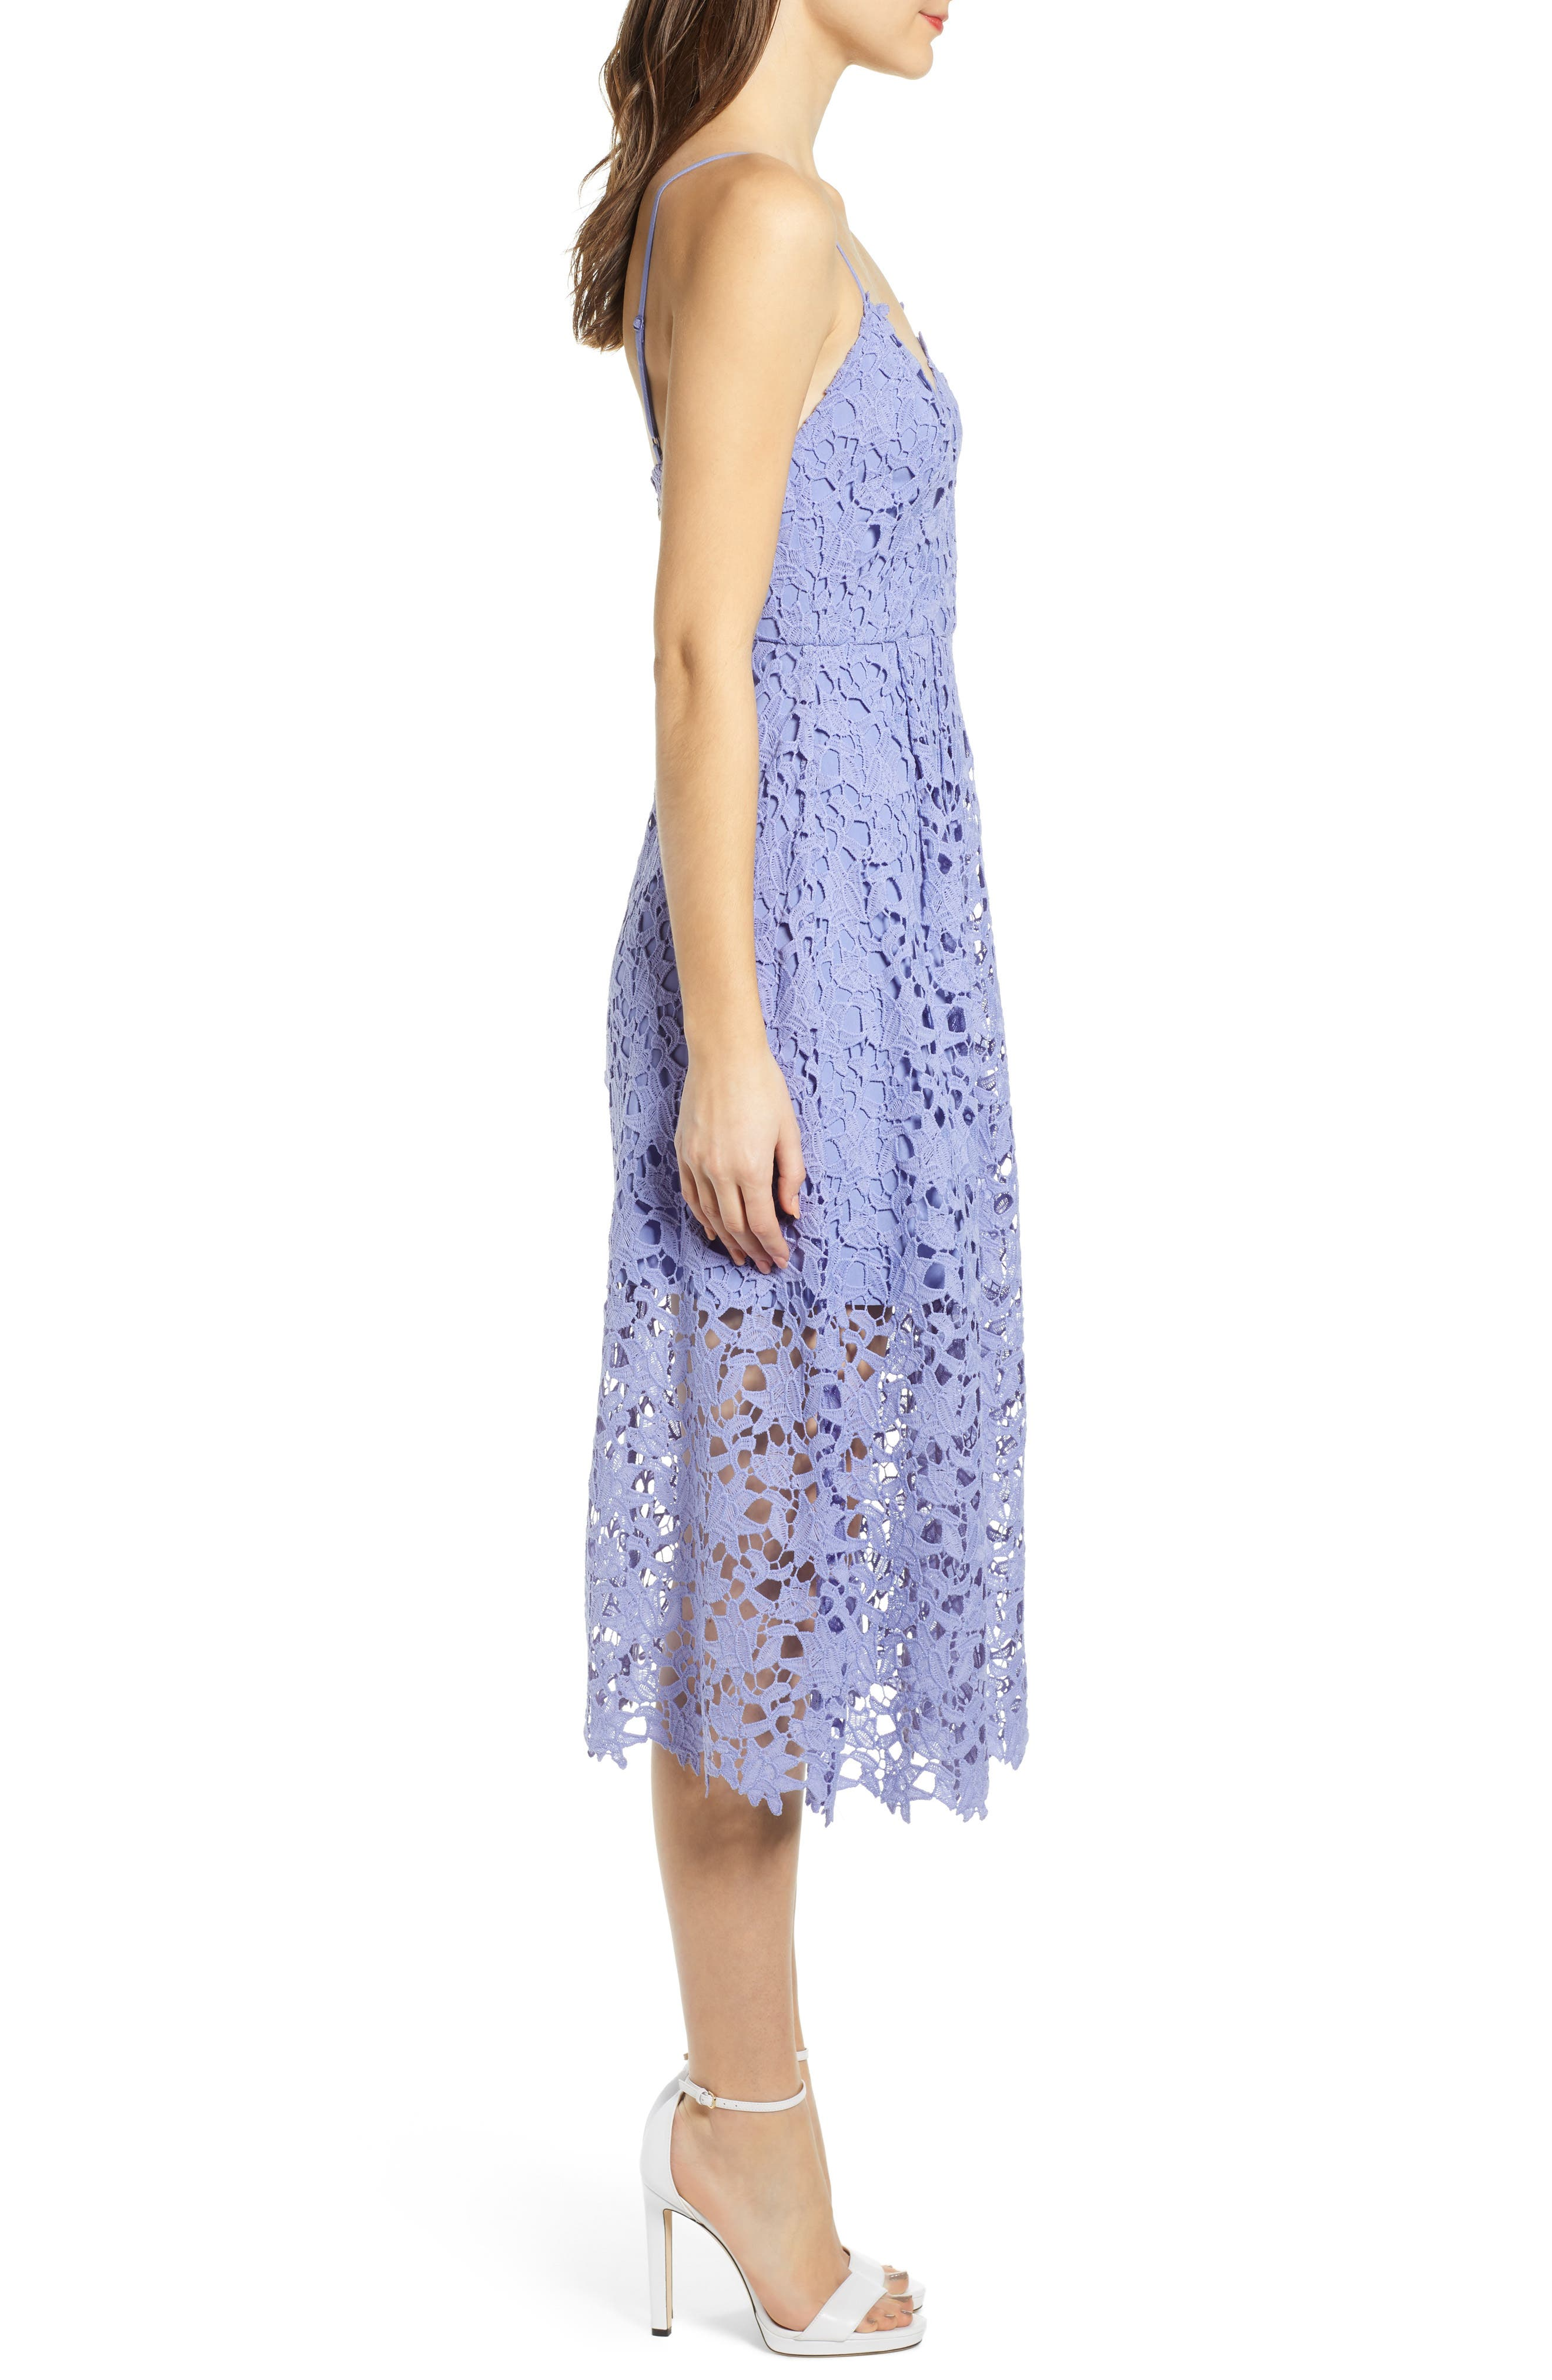 ASTR THE LABEL, Lace Midi Dress, Alternate thumbnail 4, color, LAVENDER